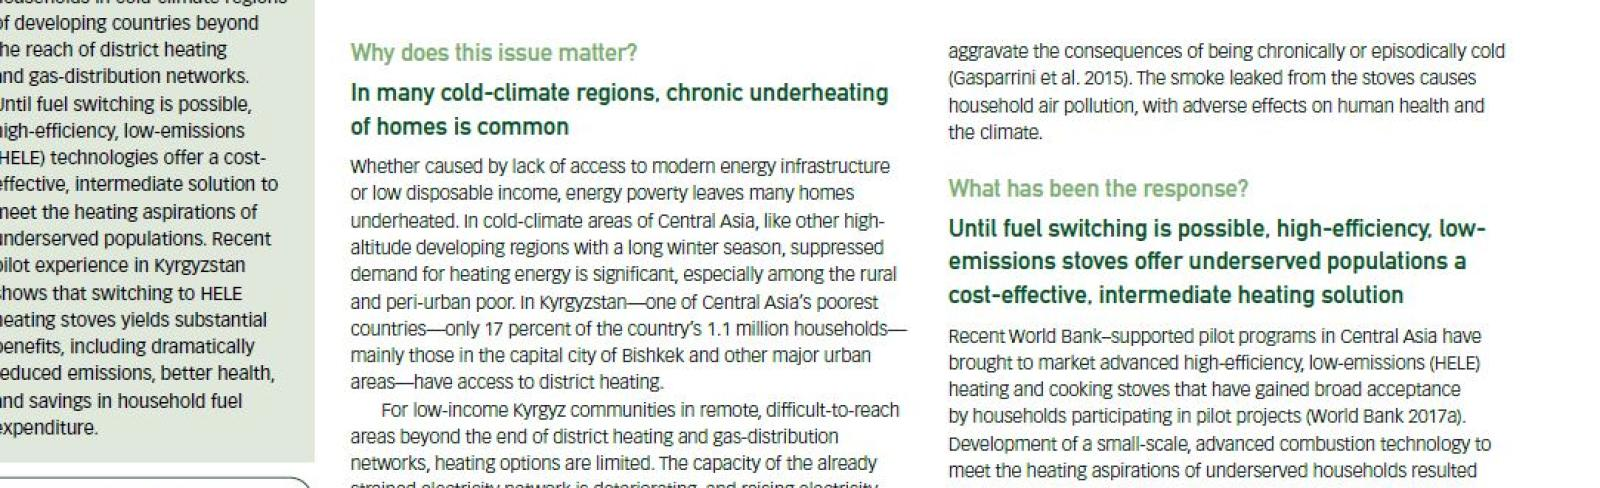 Beyond the Last Mile: Piloting High-Efficiency, Low-Emissions Heating Technologies in Central Asia